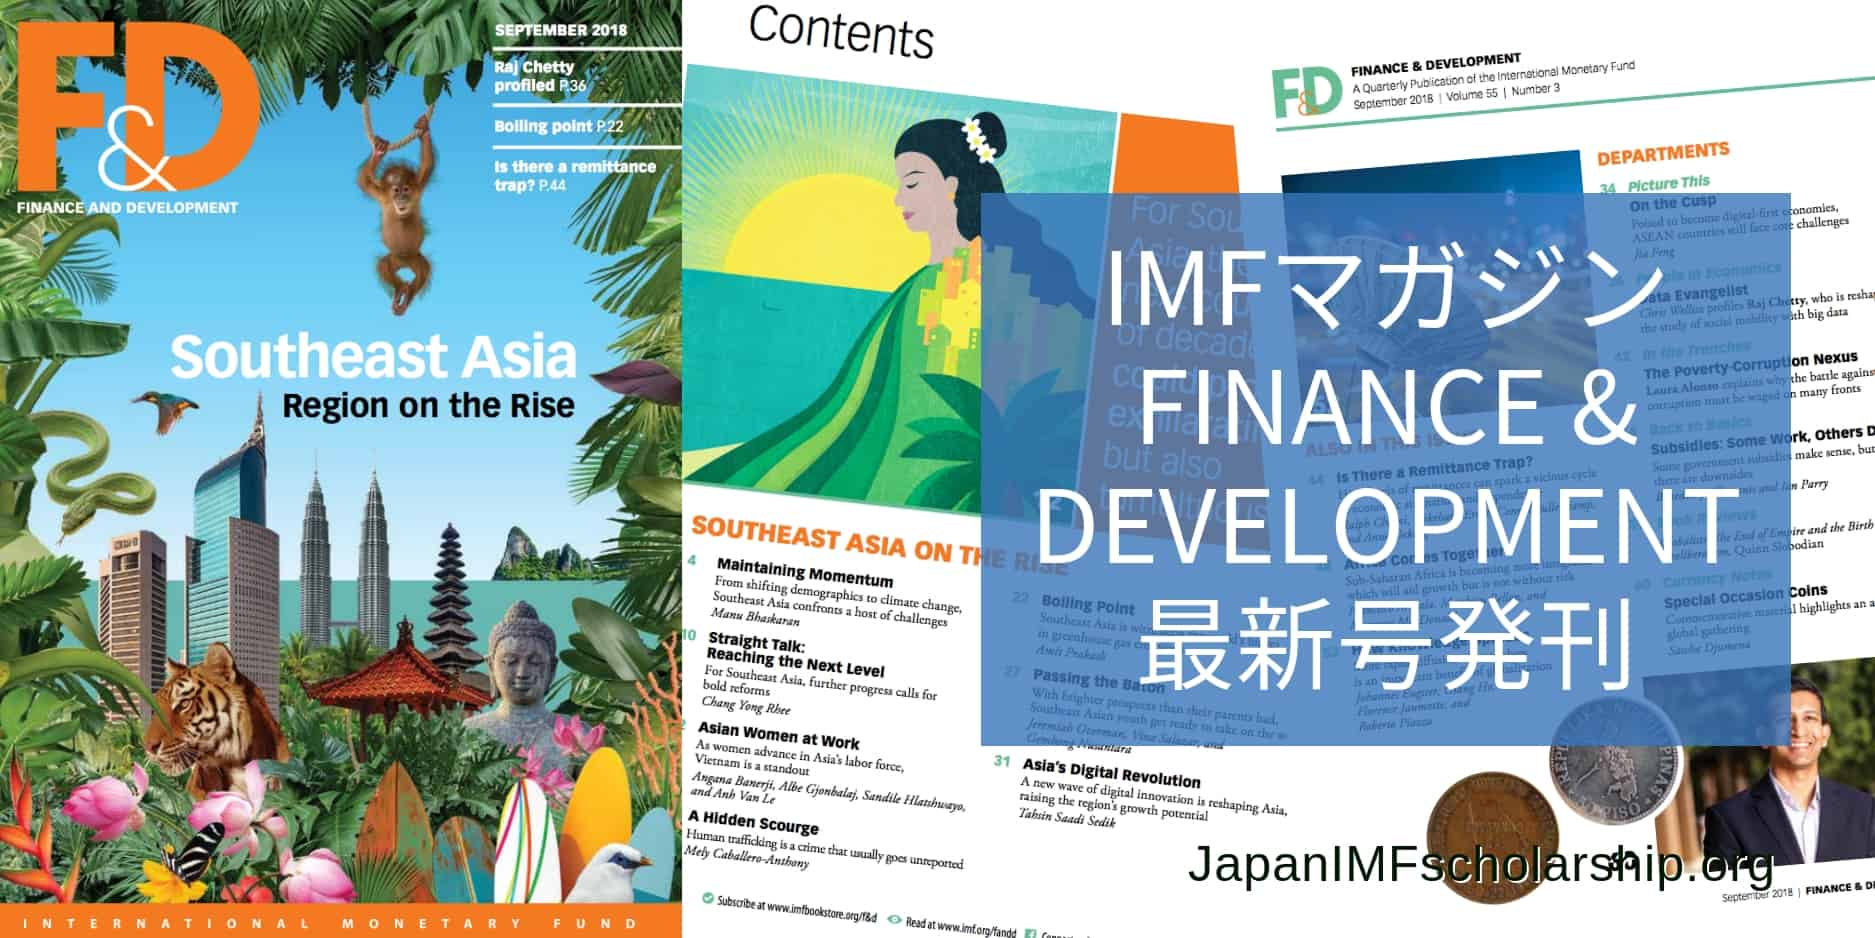 jisp imf new magazine 2018-9